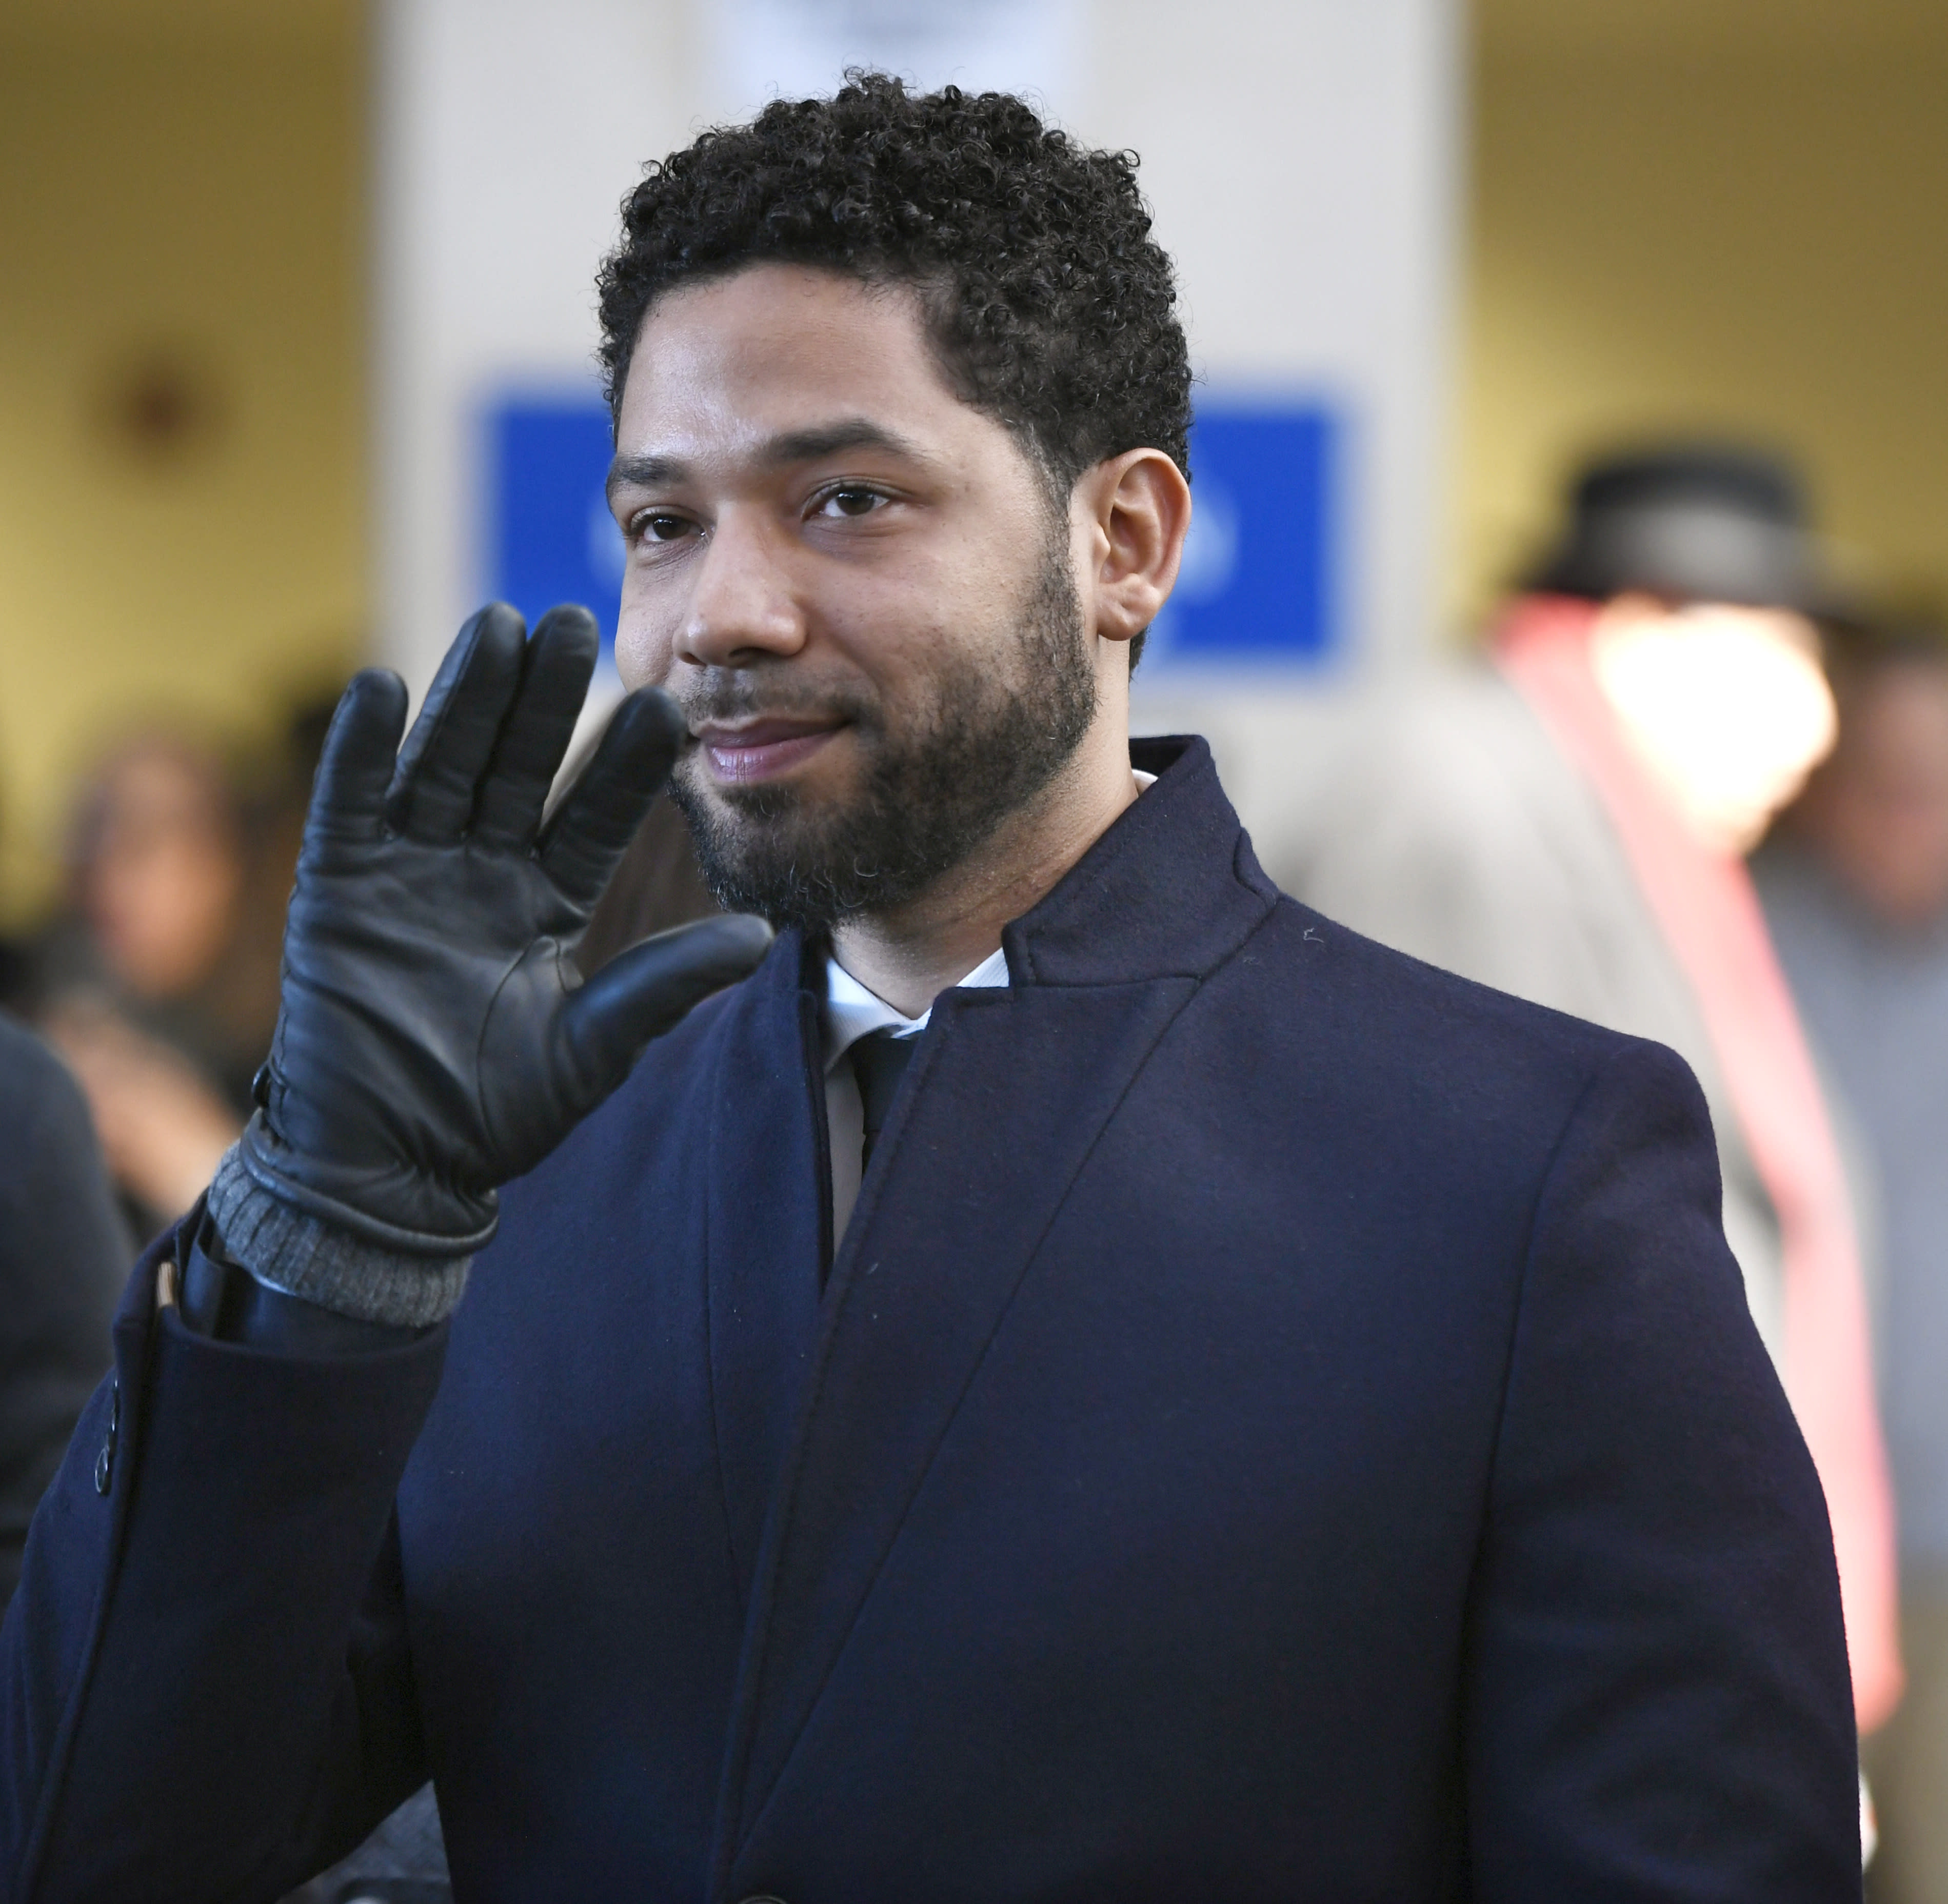 FILE - In this March 26, 2019 file photo, actor Jussie Smollett smiles and waves to supporters before leaving Cook County Court after his charges were dropped, in Chicago. A Chicago judge is expected to decide whether to let a former U.S. attorney stay on as special prosecutor examining the dismissal of charges against actor Smollett. The hearing Friday, Oct. 4, 2019, comes after Dan Webb revealed he co-hosted a fundraiser for Kim Foxx during her 2016 run for Chicago's top prosecutor job. Her office in March abruptly dropped charges accusing Smollett of staging a racist, homophobic attack on himself. (AP Photo/Paul Beaty)